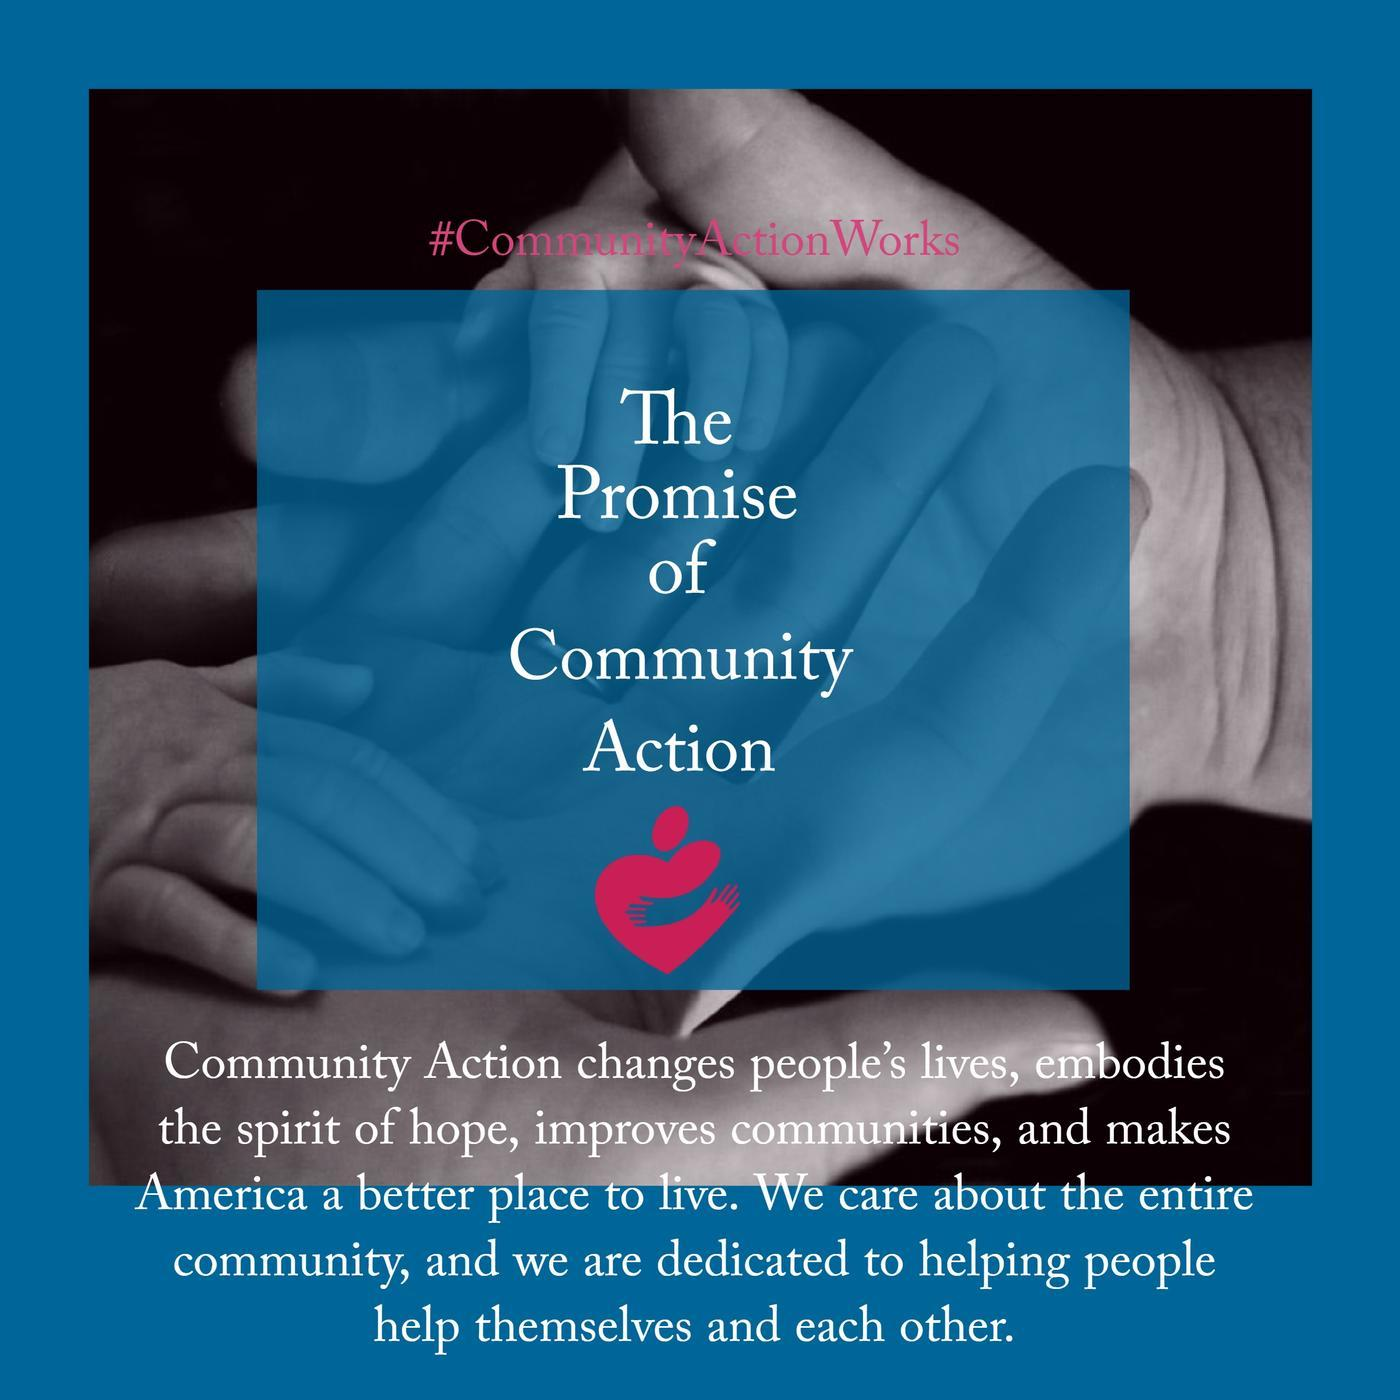 The Promise of Community Action